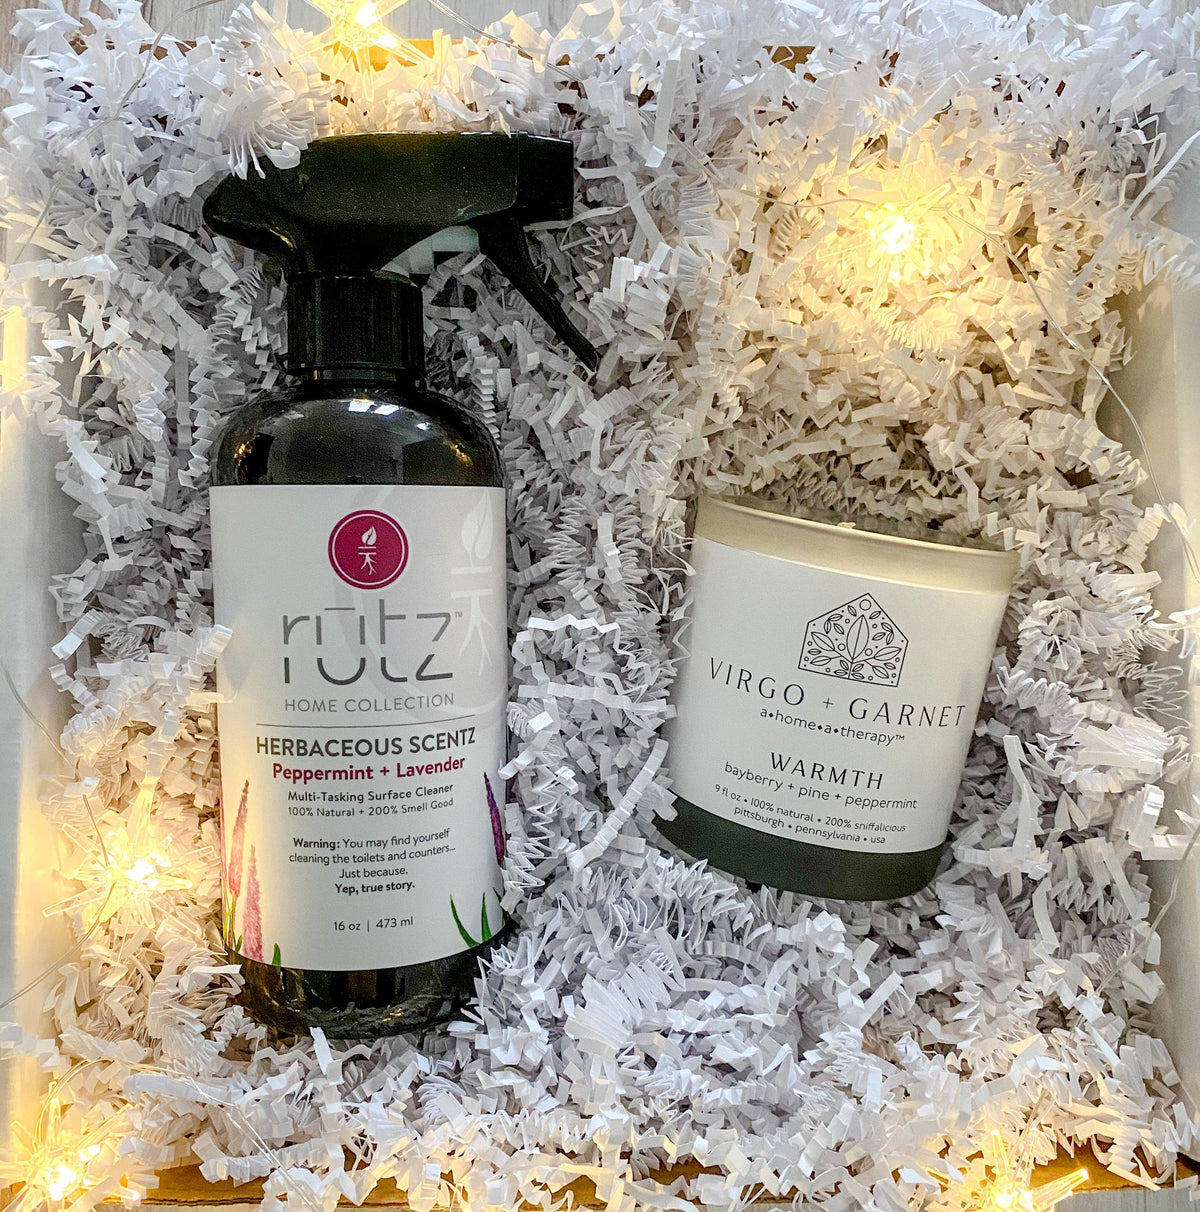 V+G Candle + All-Natural Cleaner gift box Virgo + Garnet | Beautifully Balanced Living